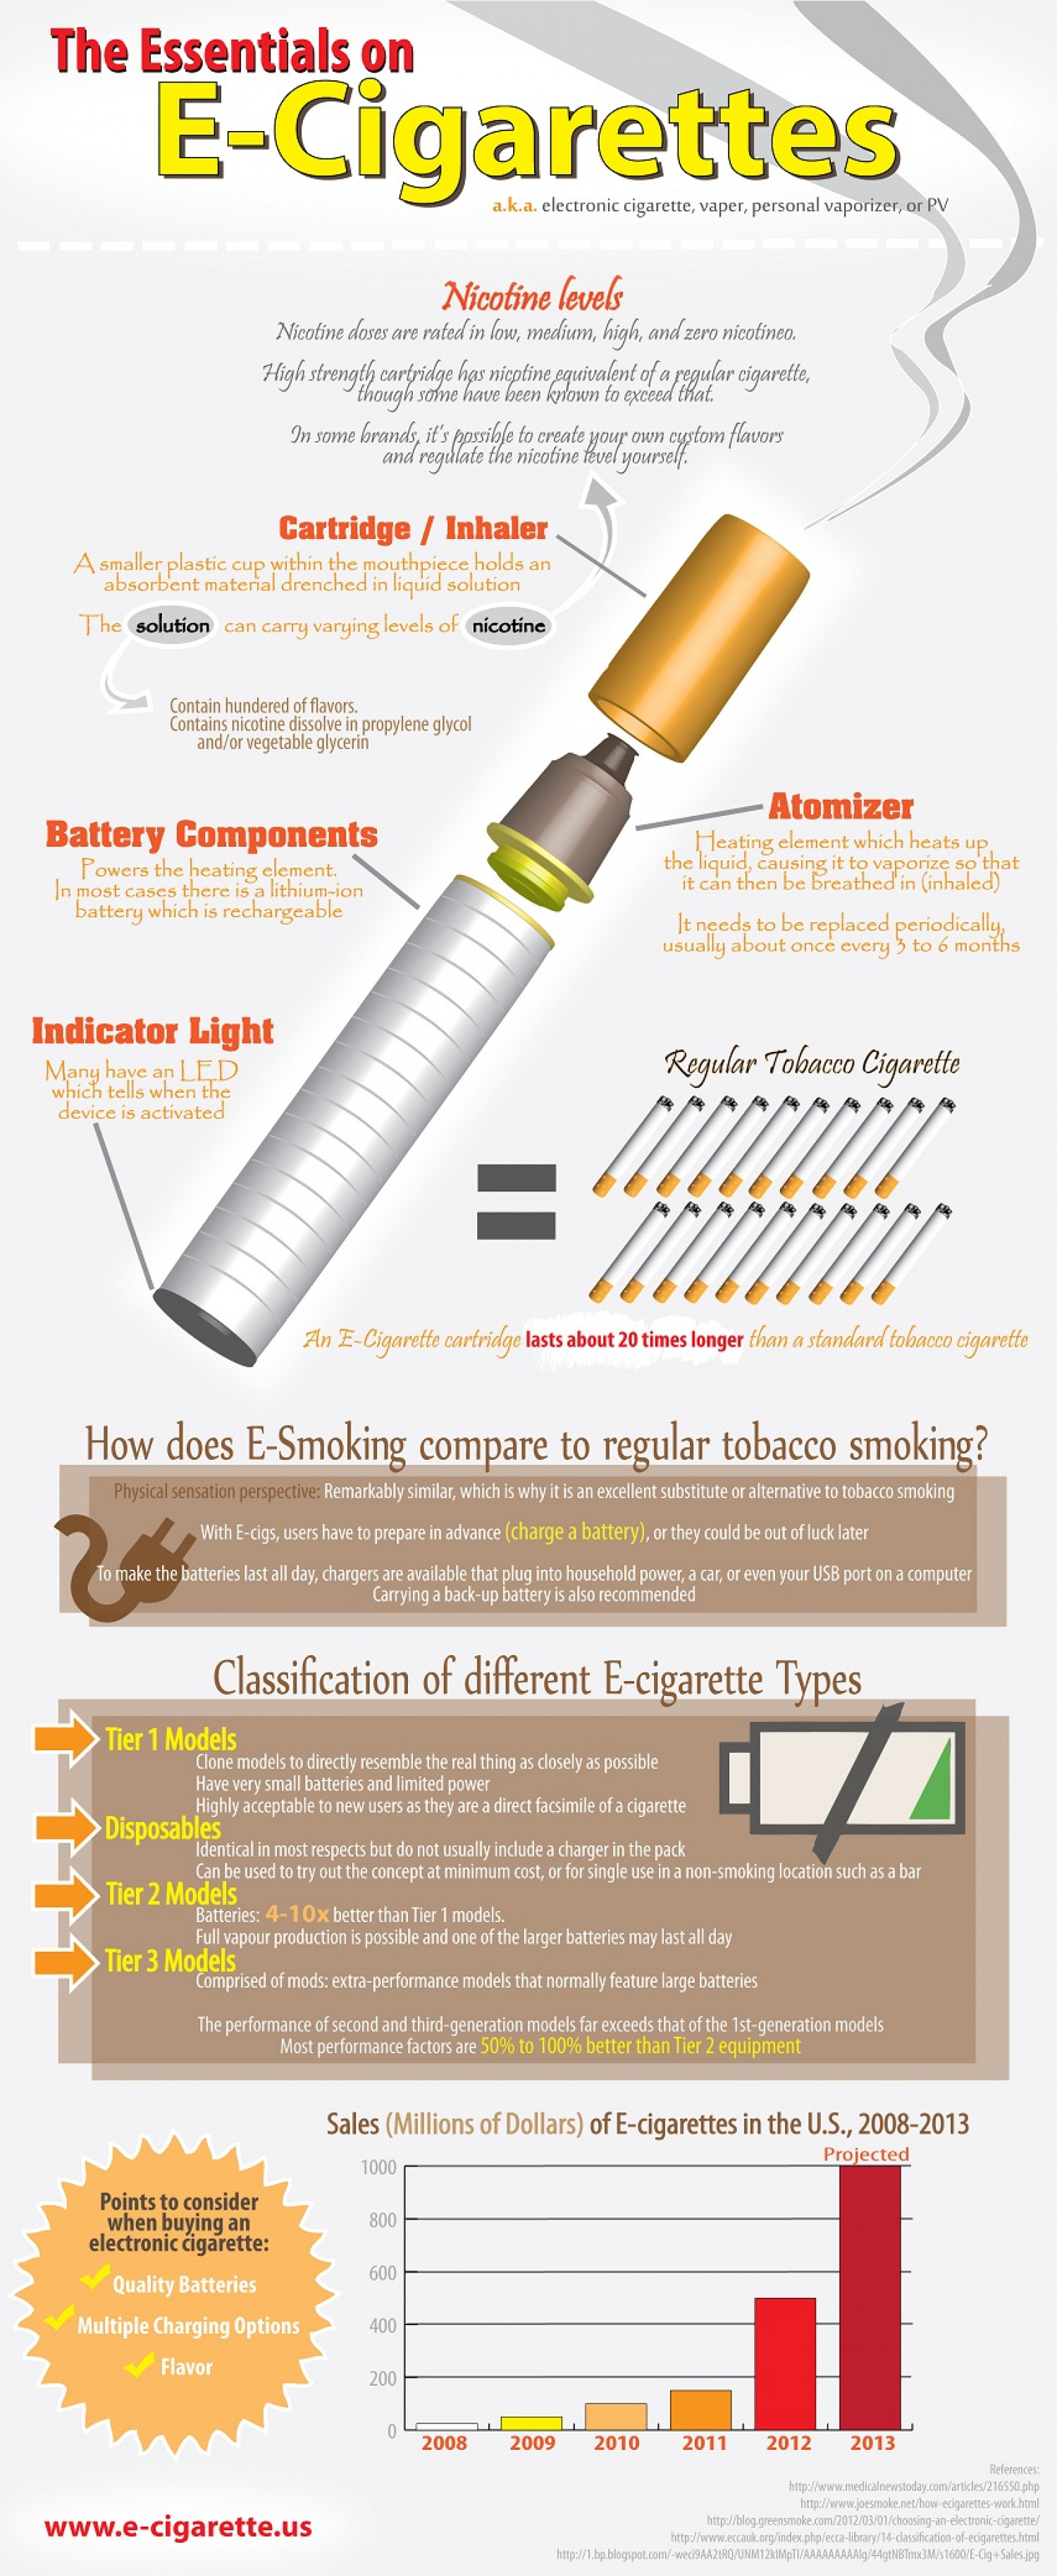 The Essentials on E-Cigarettes Infographic